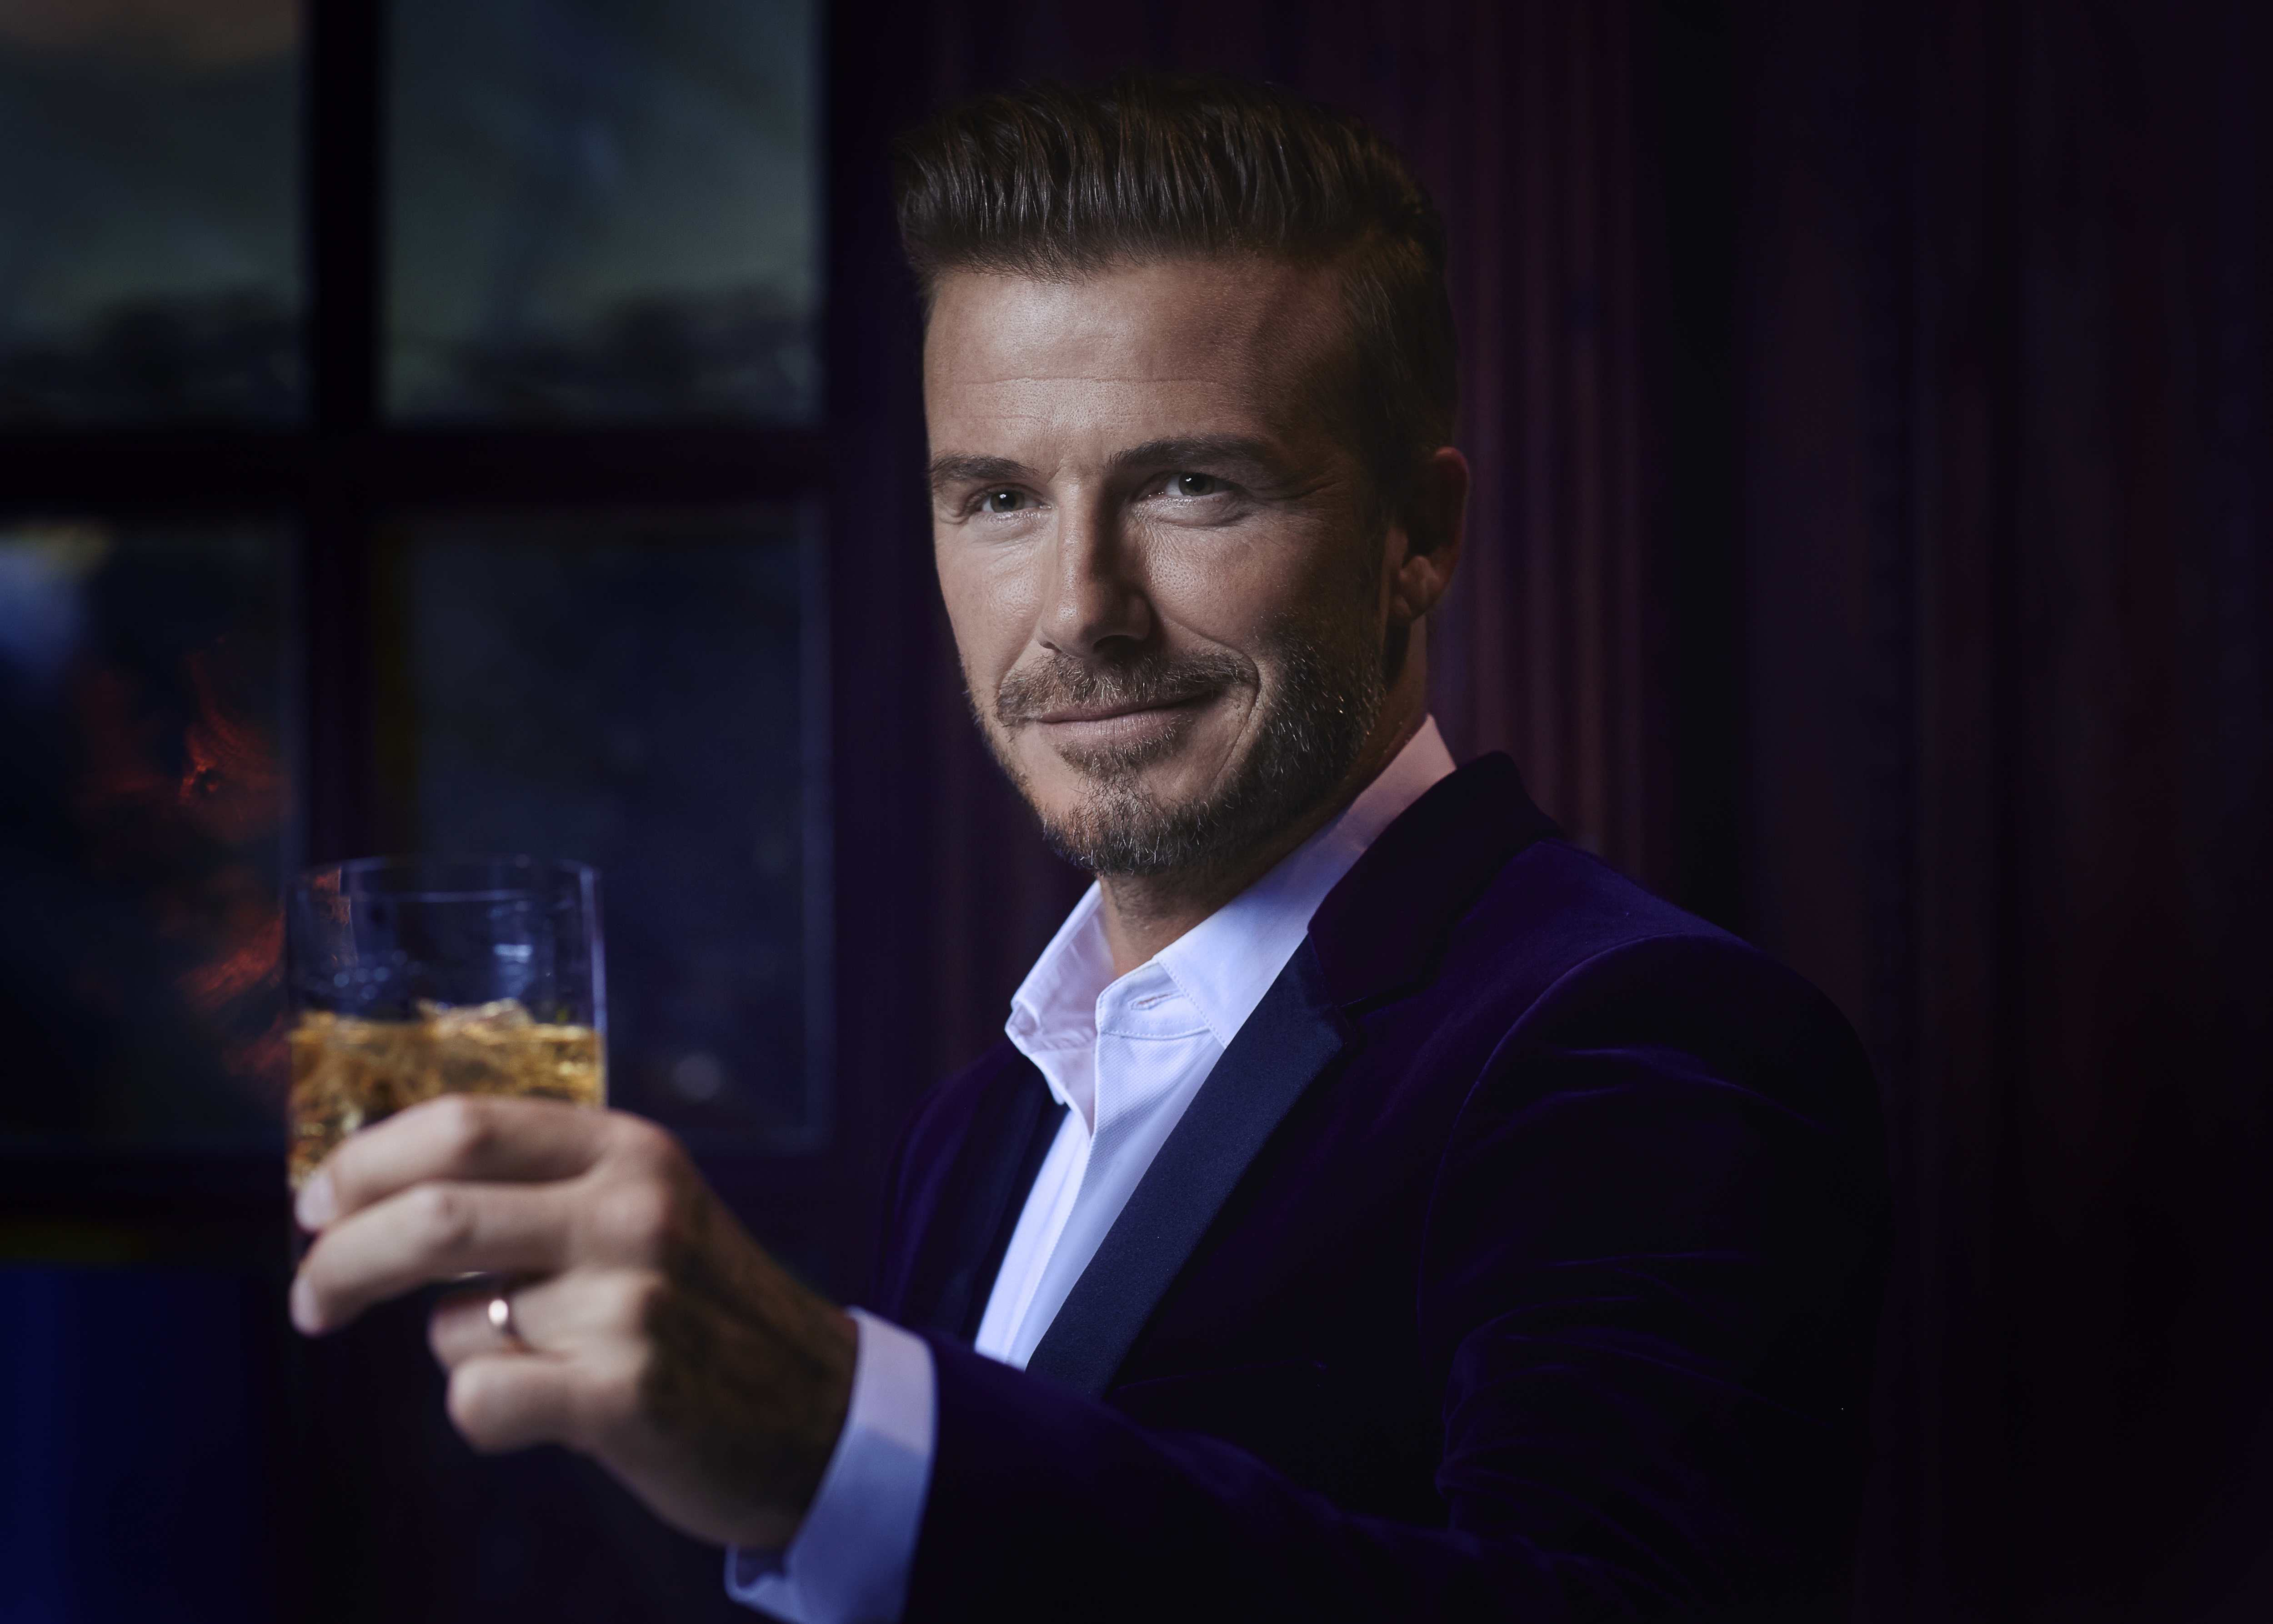 Beckham is leading the celeb campaign for In.